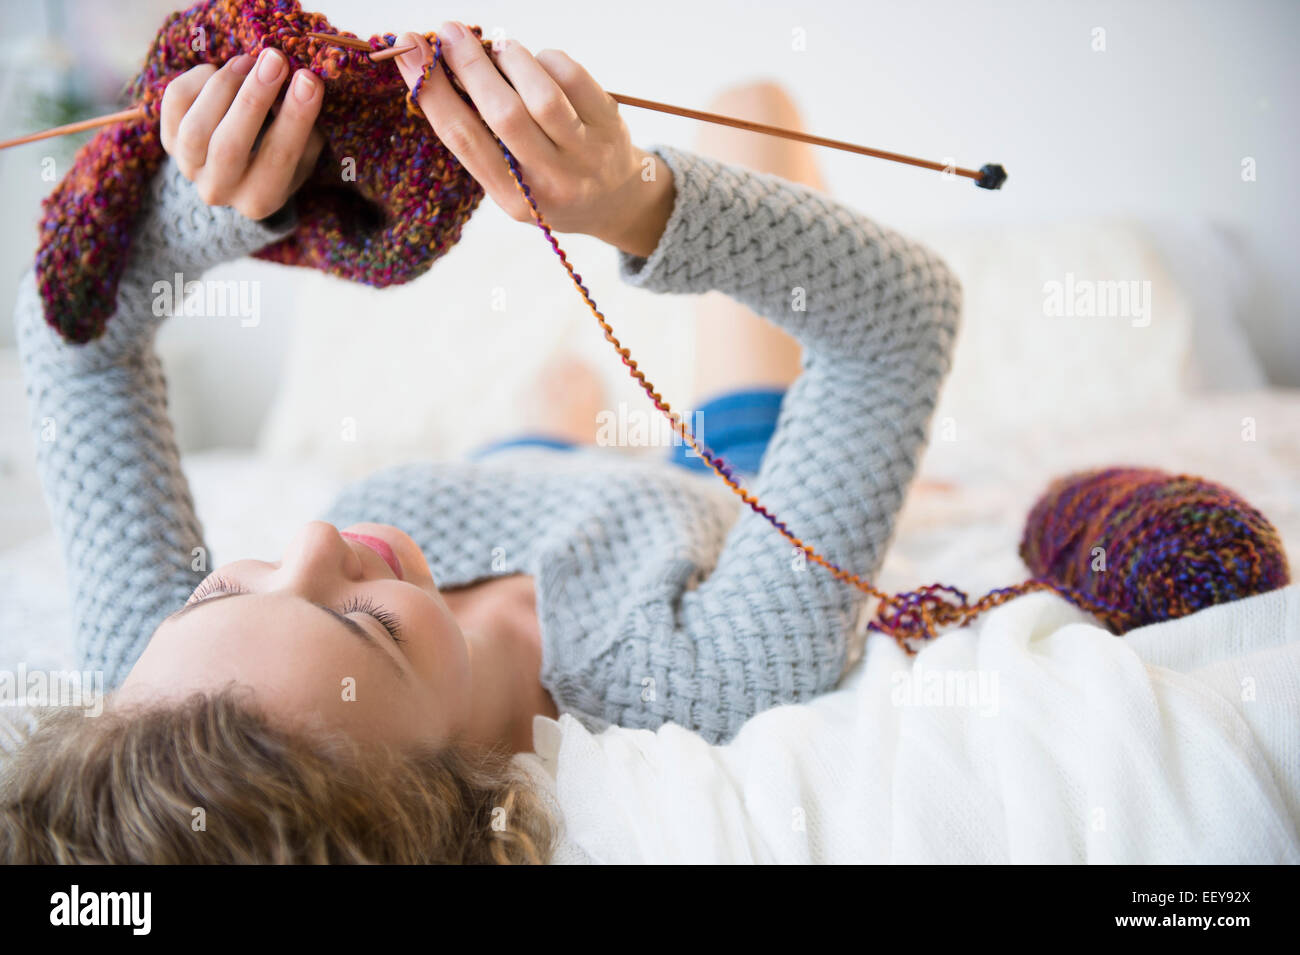 Young woman lying down and knitting - Stock Image